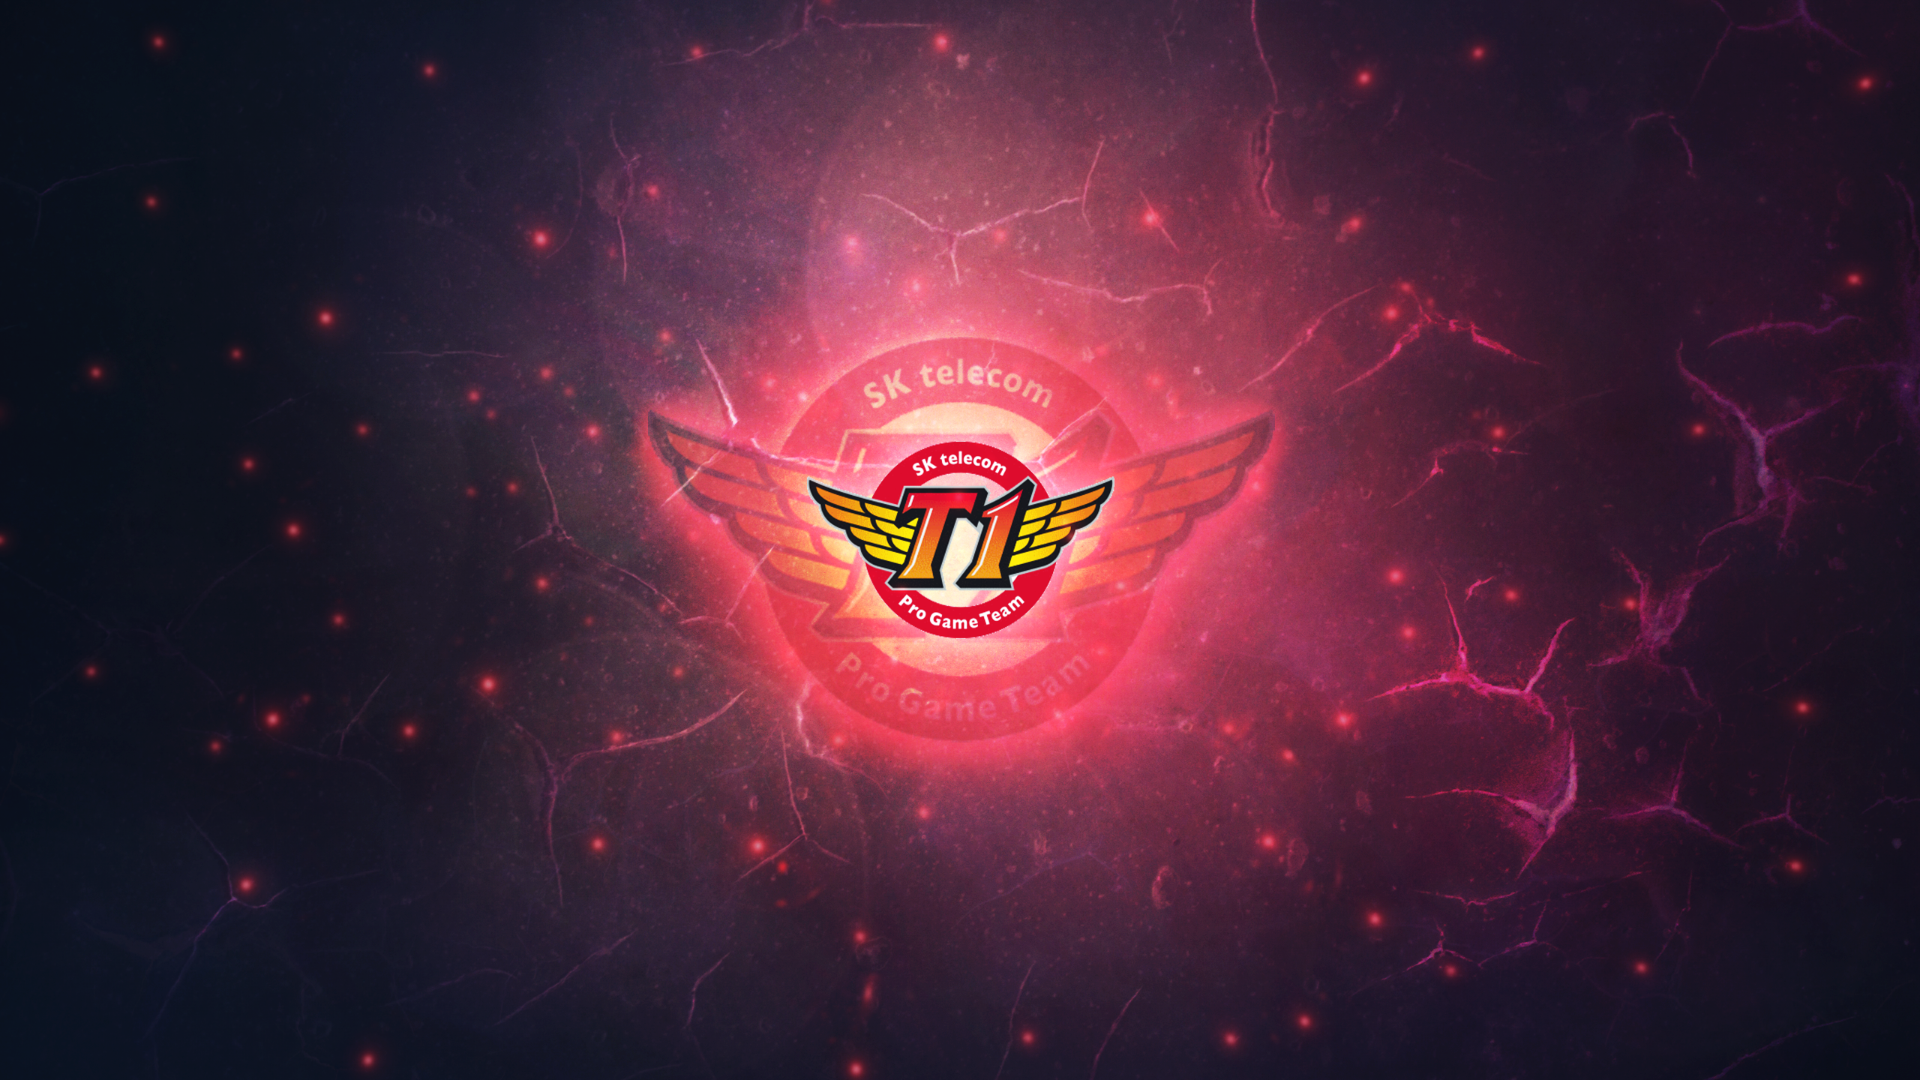 Skt t1 k wallpaper by nervyzombie on deviantart for Deviantart wallpaper